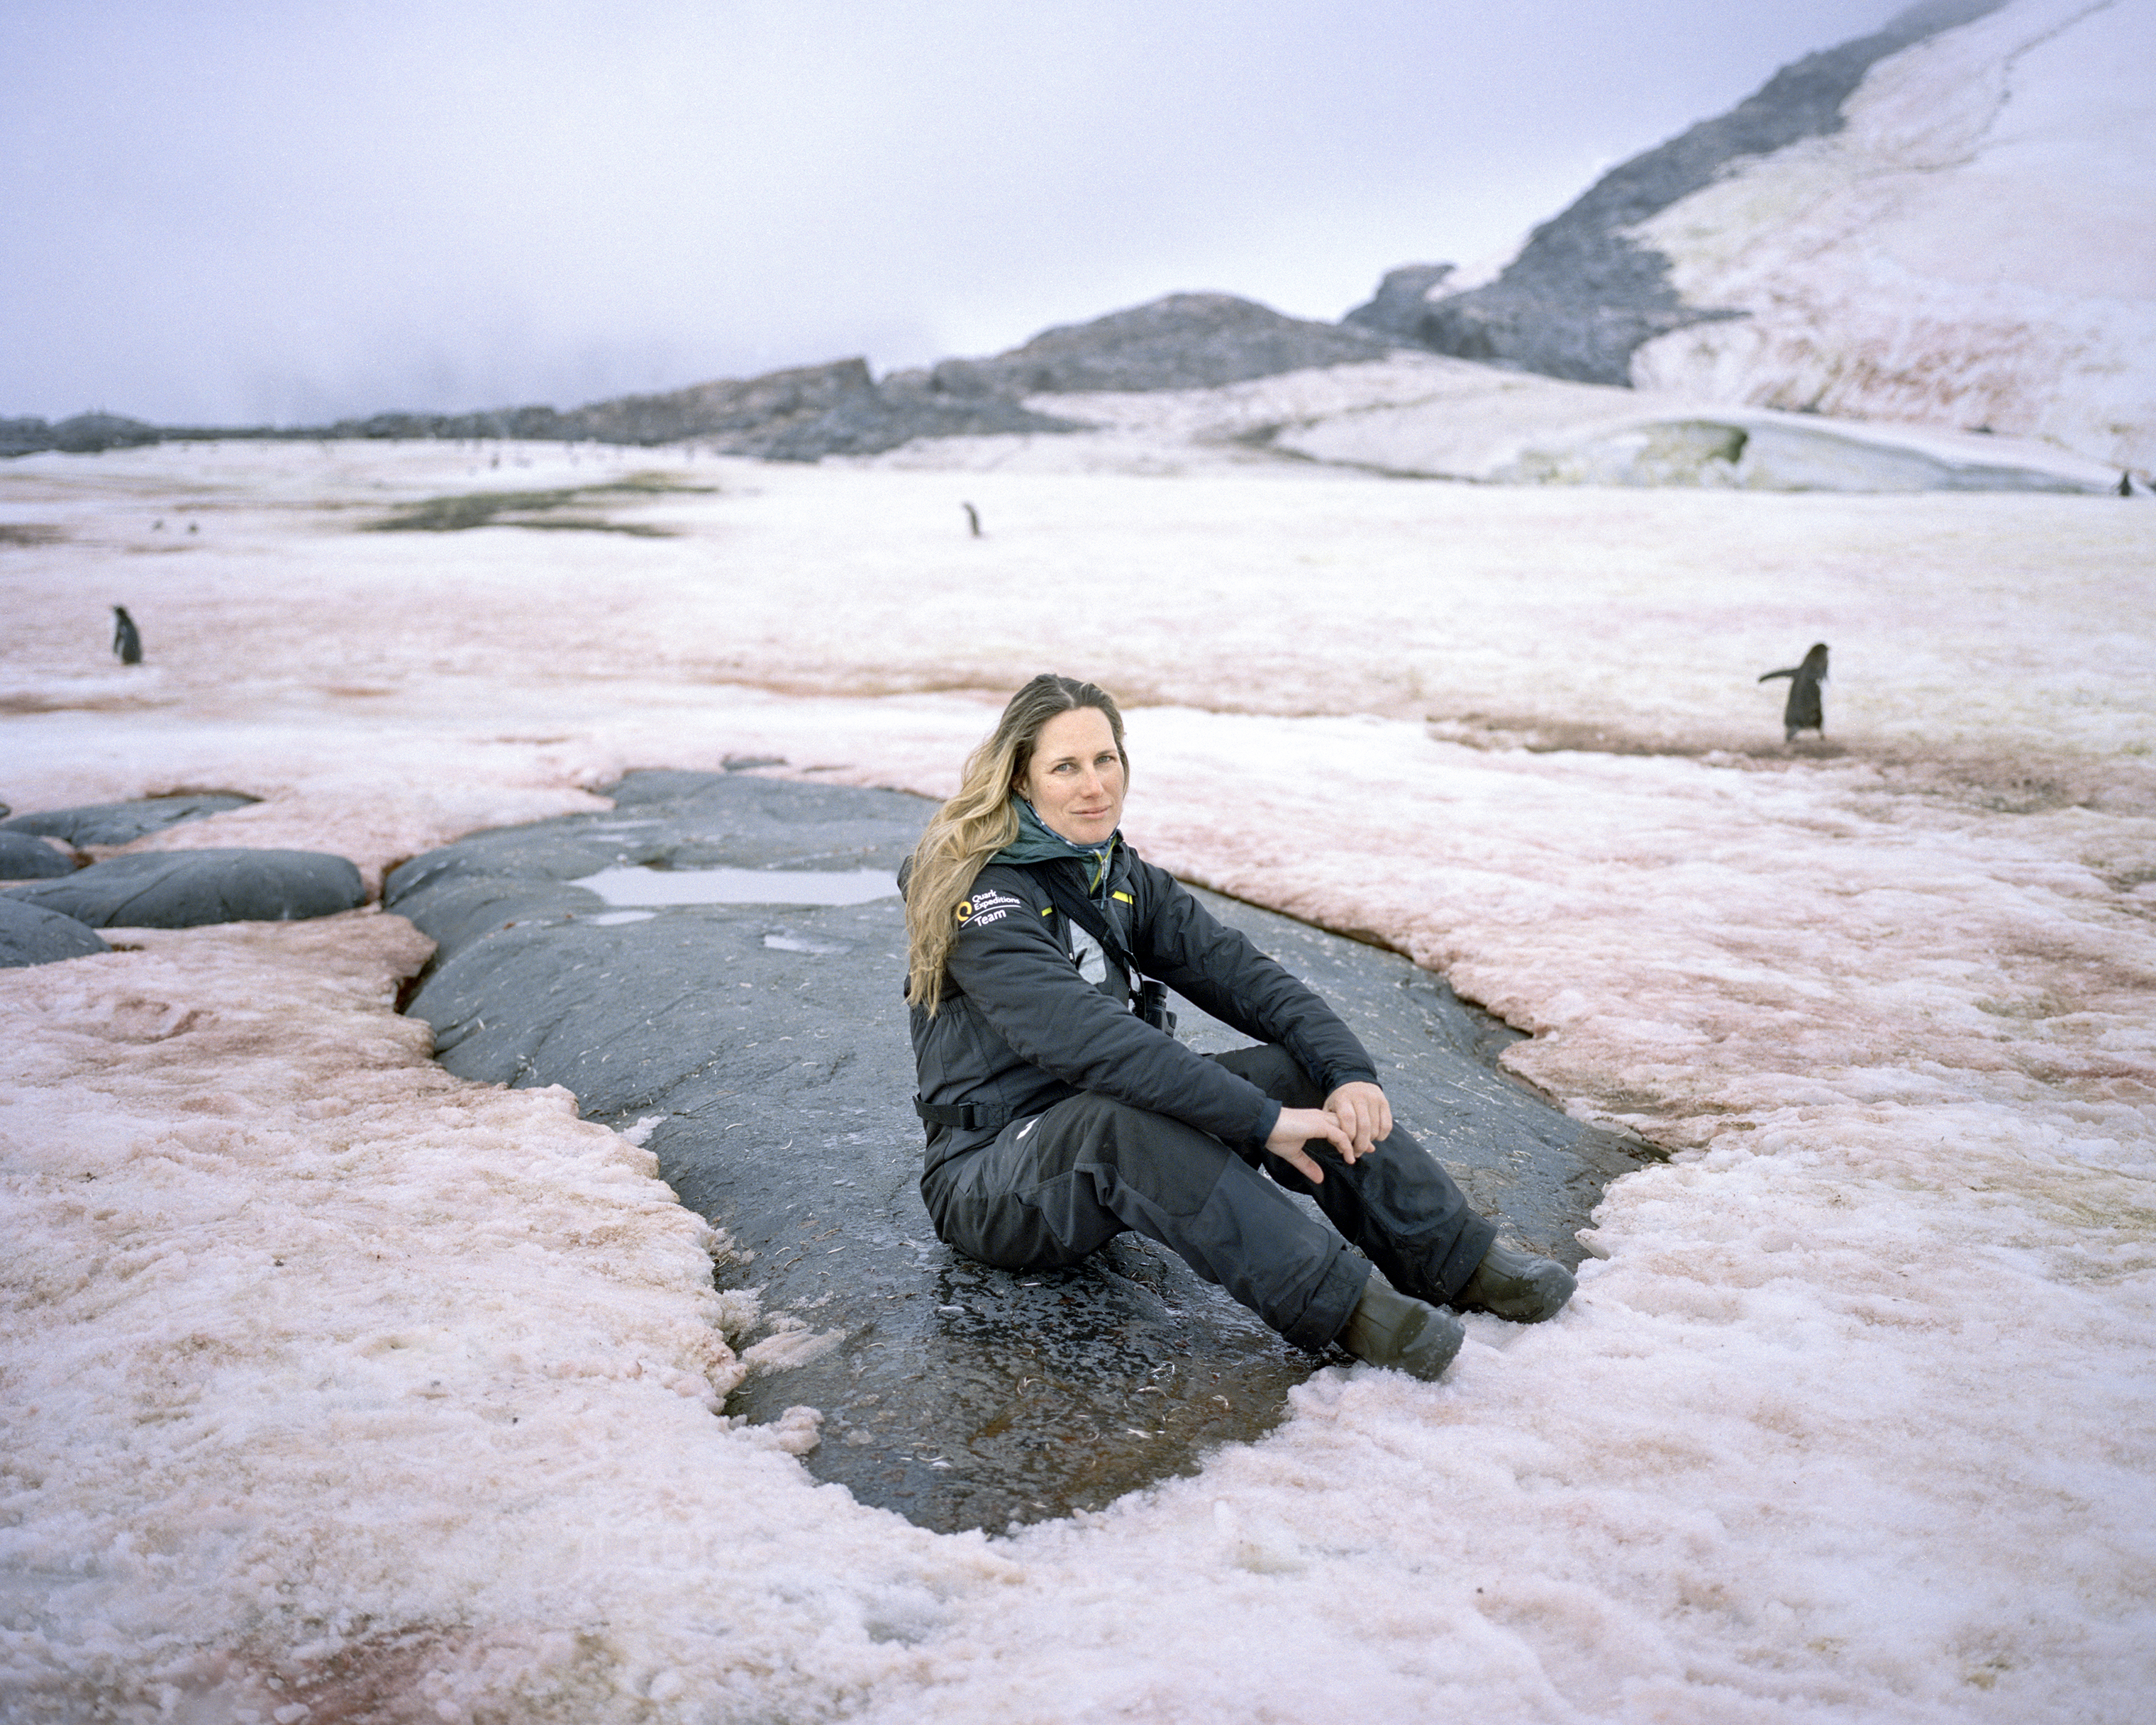 Juanita Volker, a South African expedition guide who has worked there for 9 seasons.